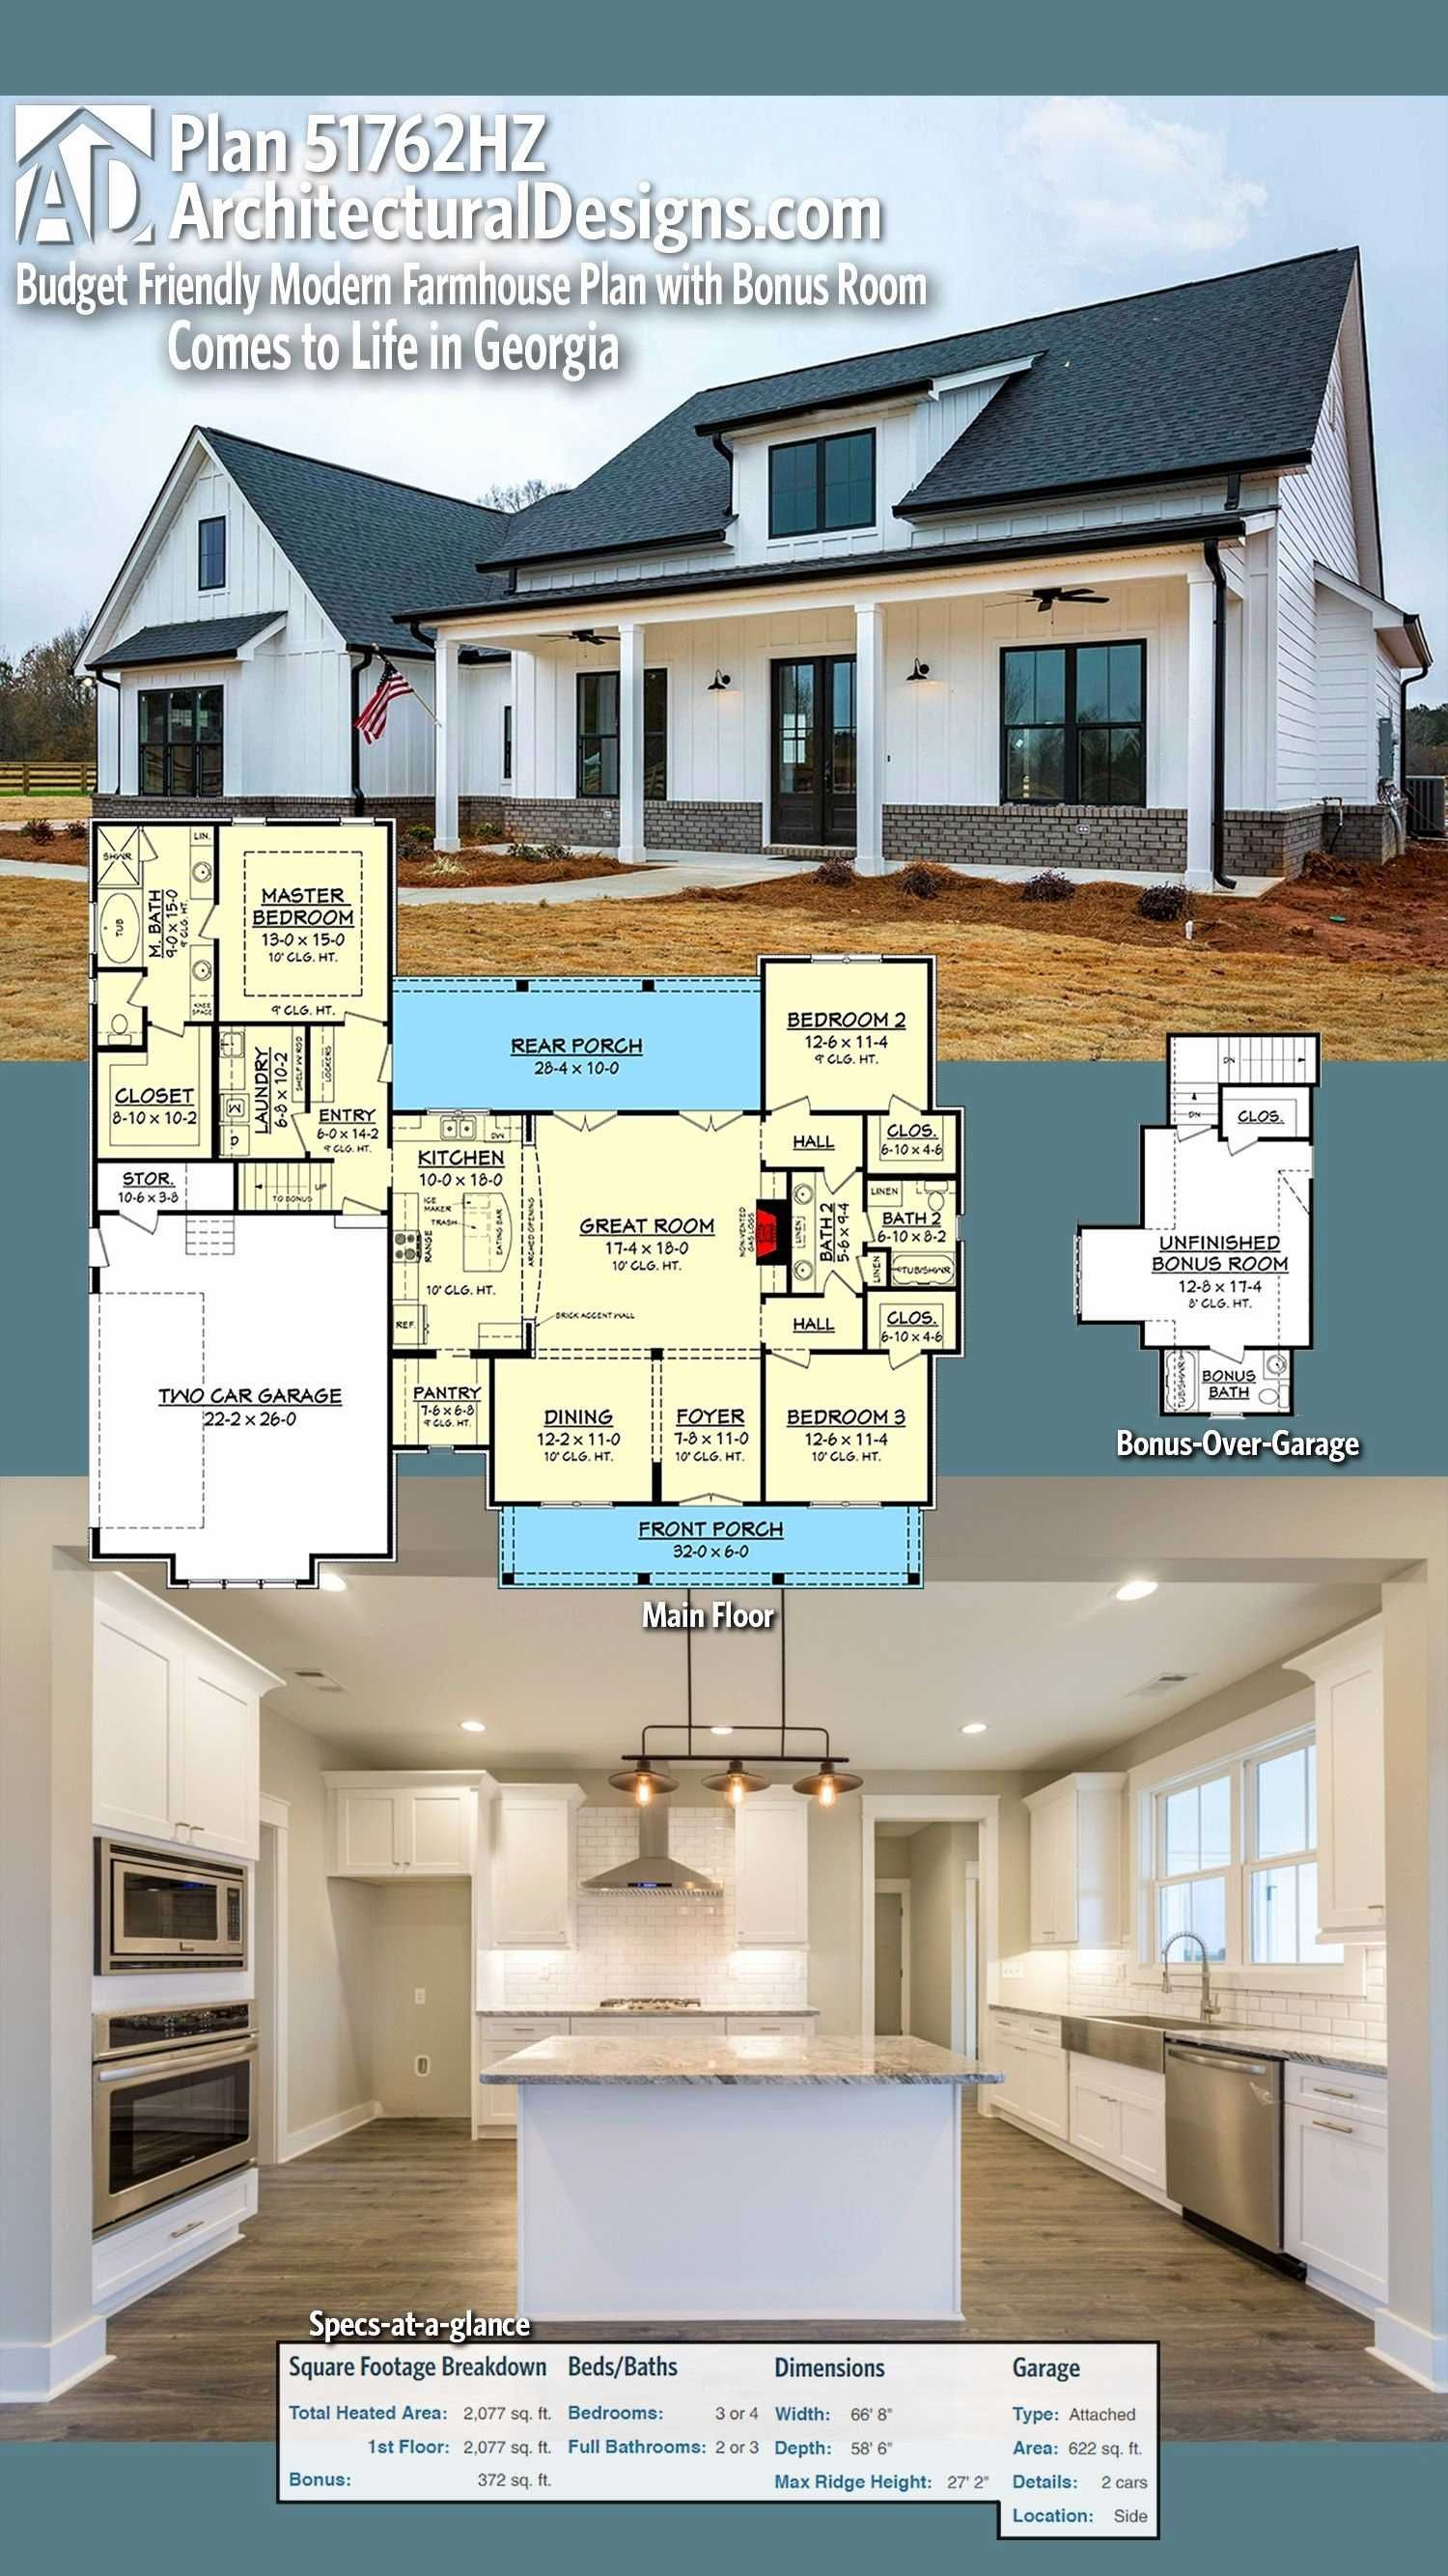 Single Story Modern Farmhouse Open Floor Plans Beautiful Modern Farm House Plans Best B Architectural Design House Plans Modern Farmhouse Plans Farmhouse Plans